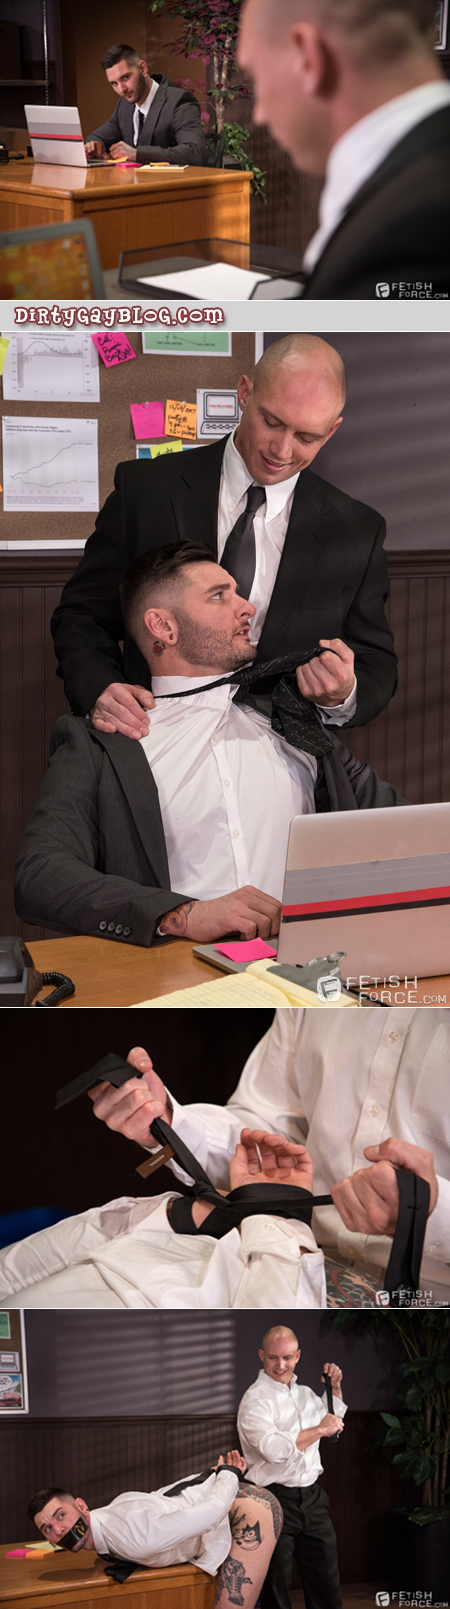 Bald Daddy in a suit practices gay BDSM with his male intern.